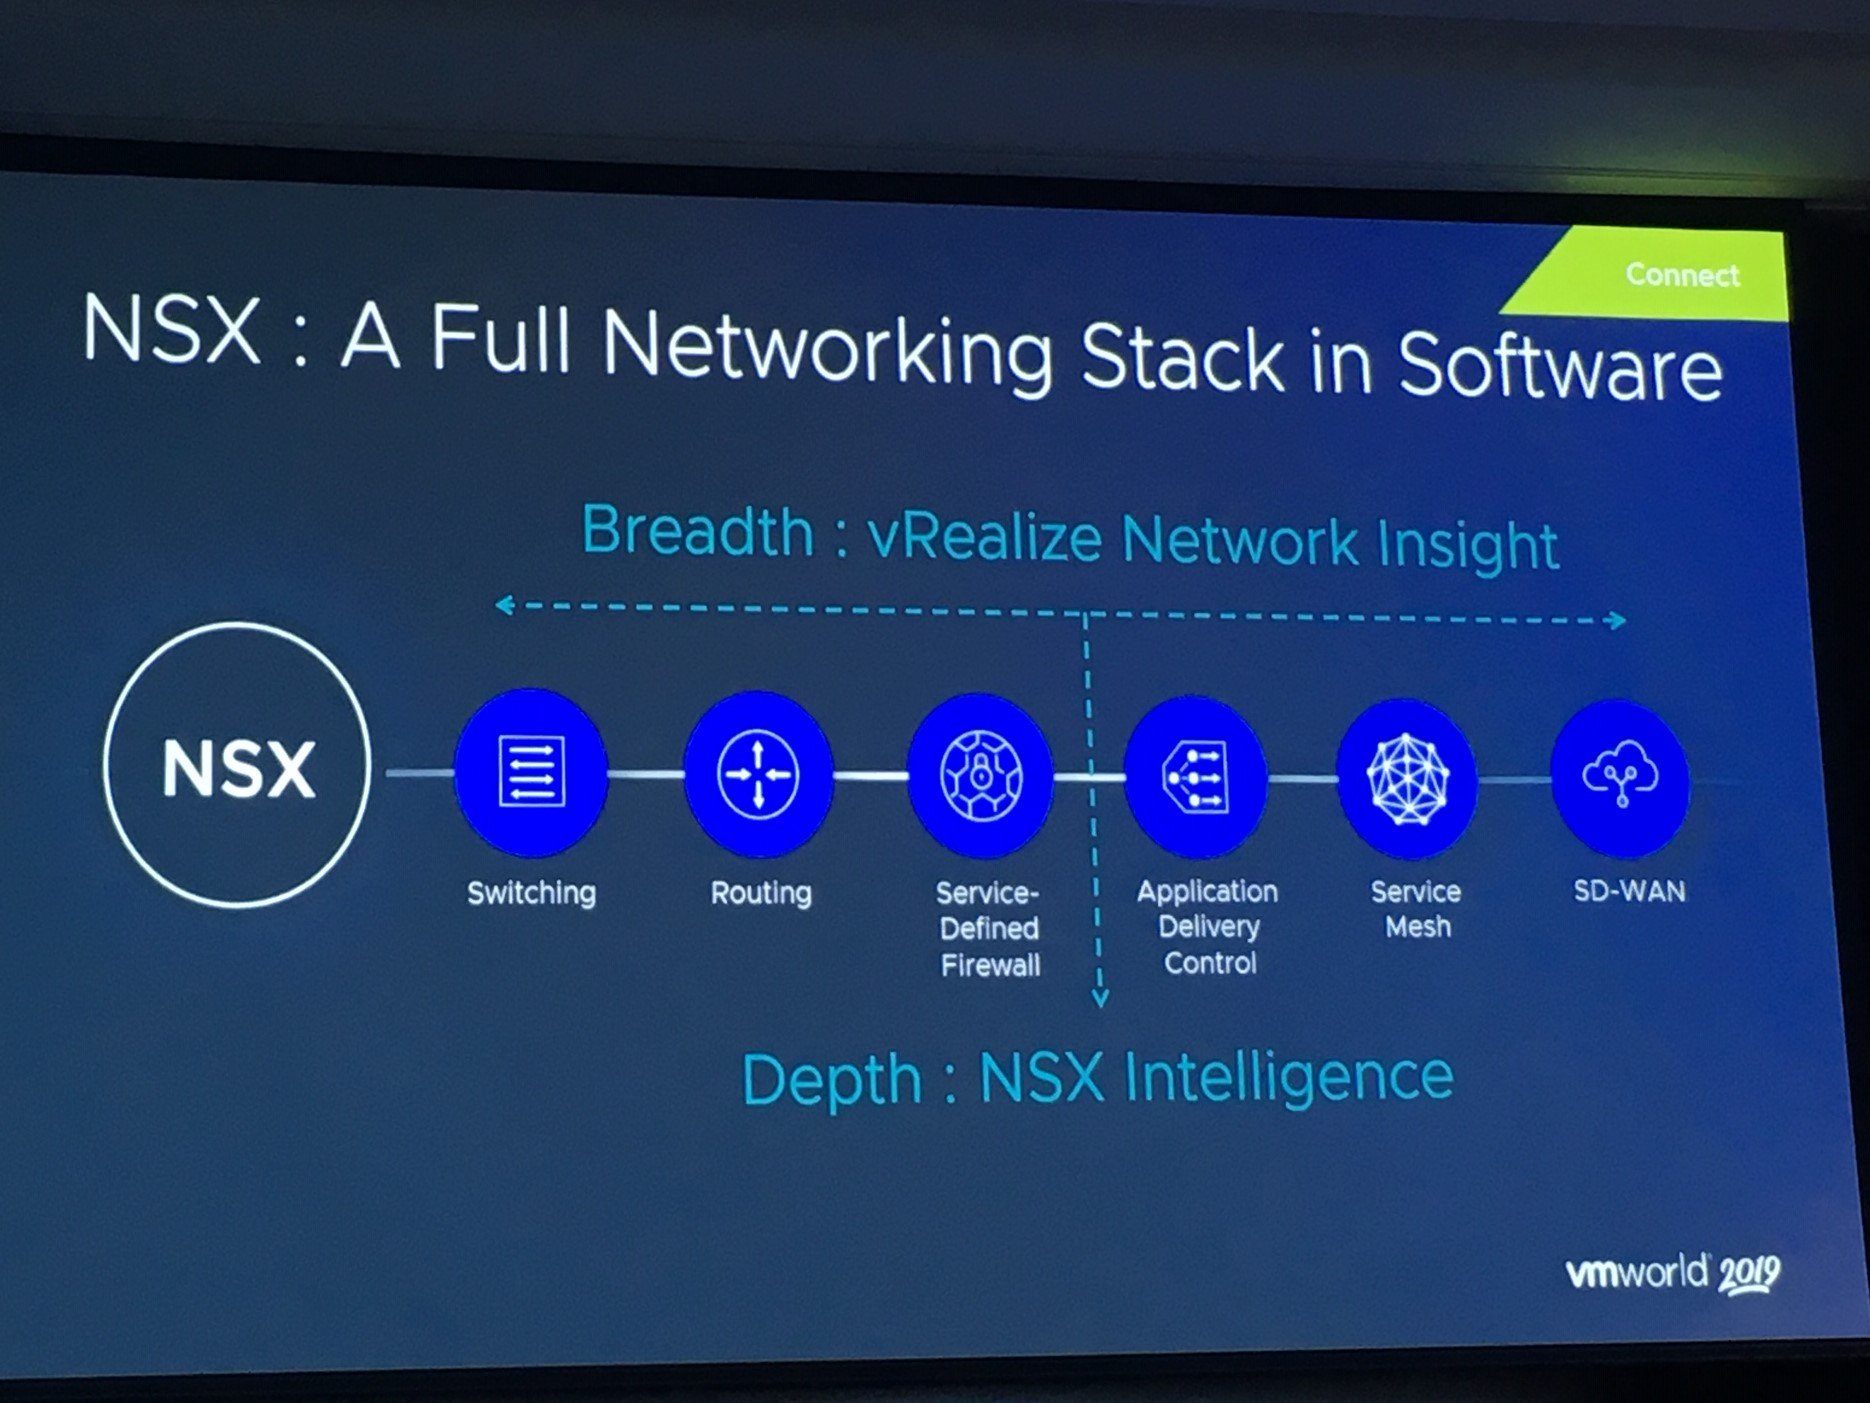 NSX software stack with NSX Intelligence